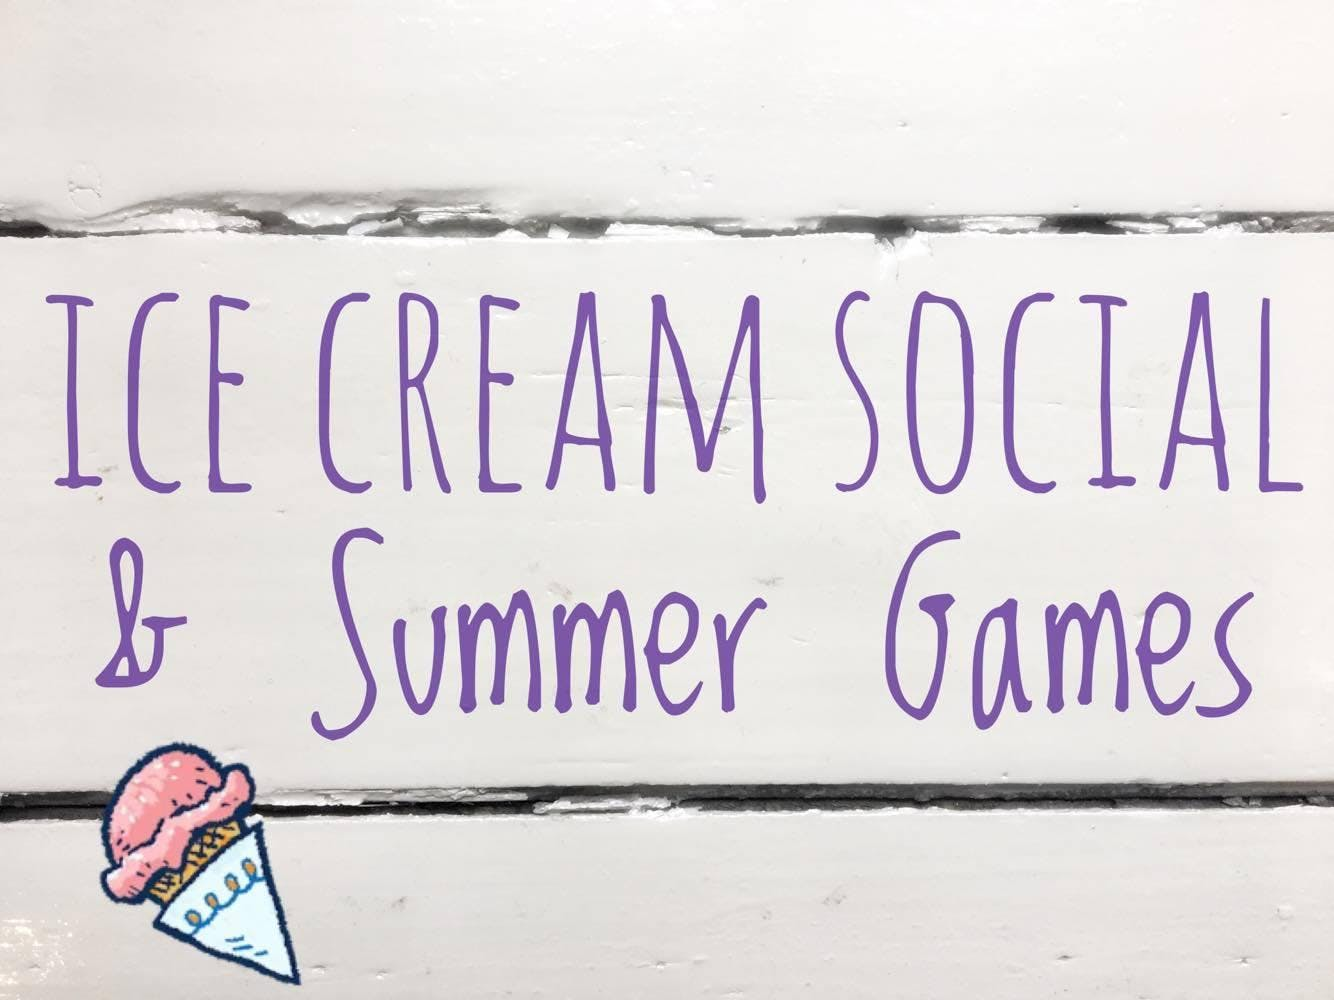 Ice Cream Social & Summer Games at the Greele